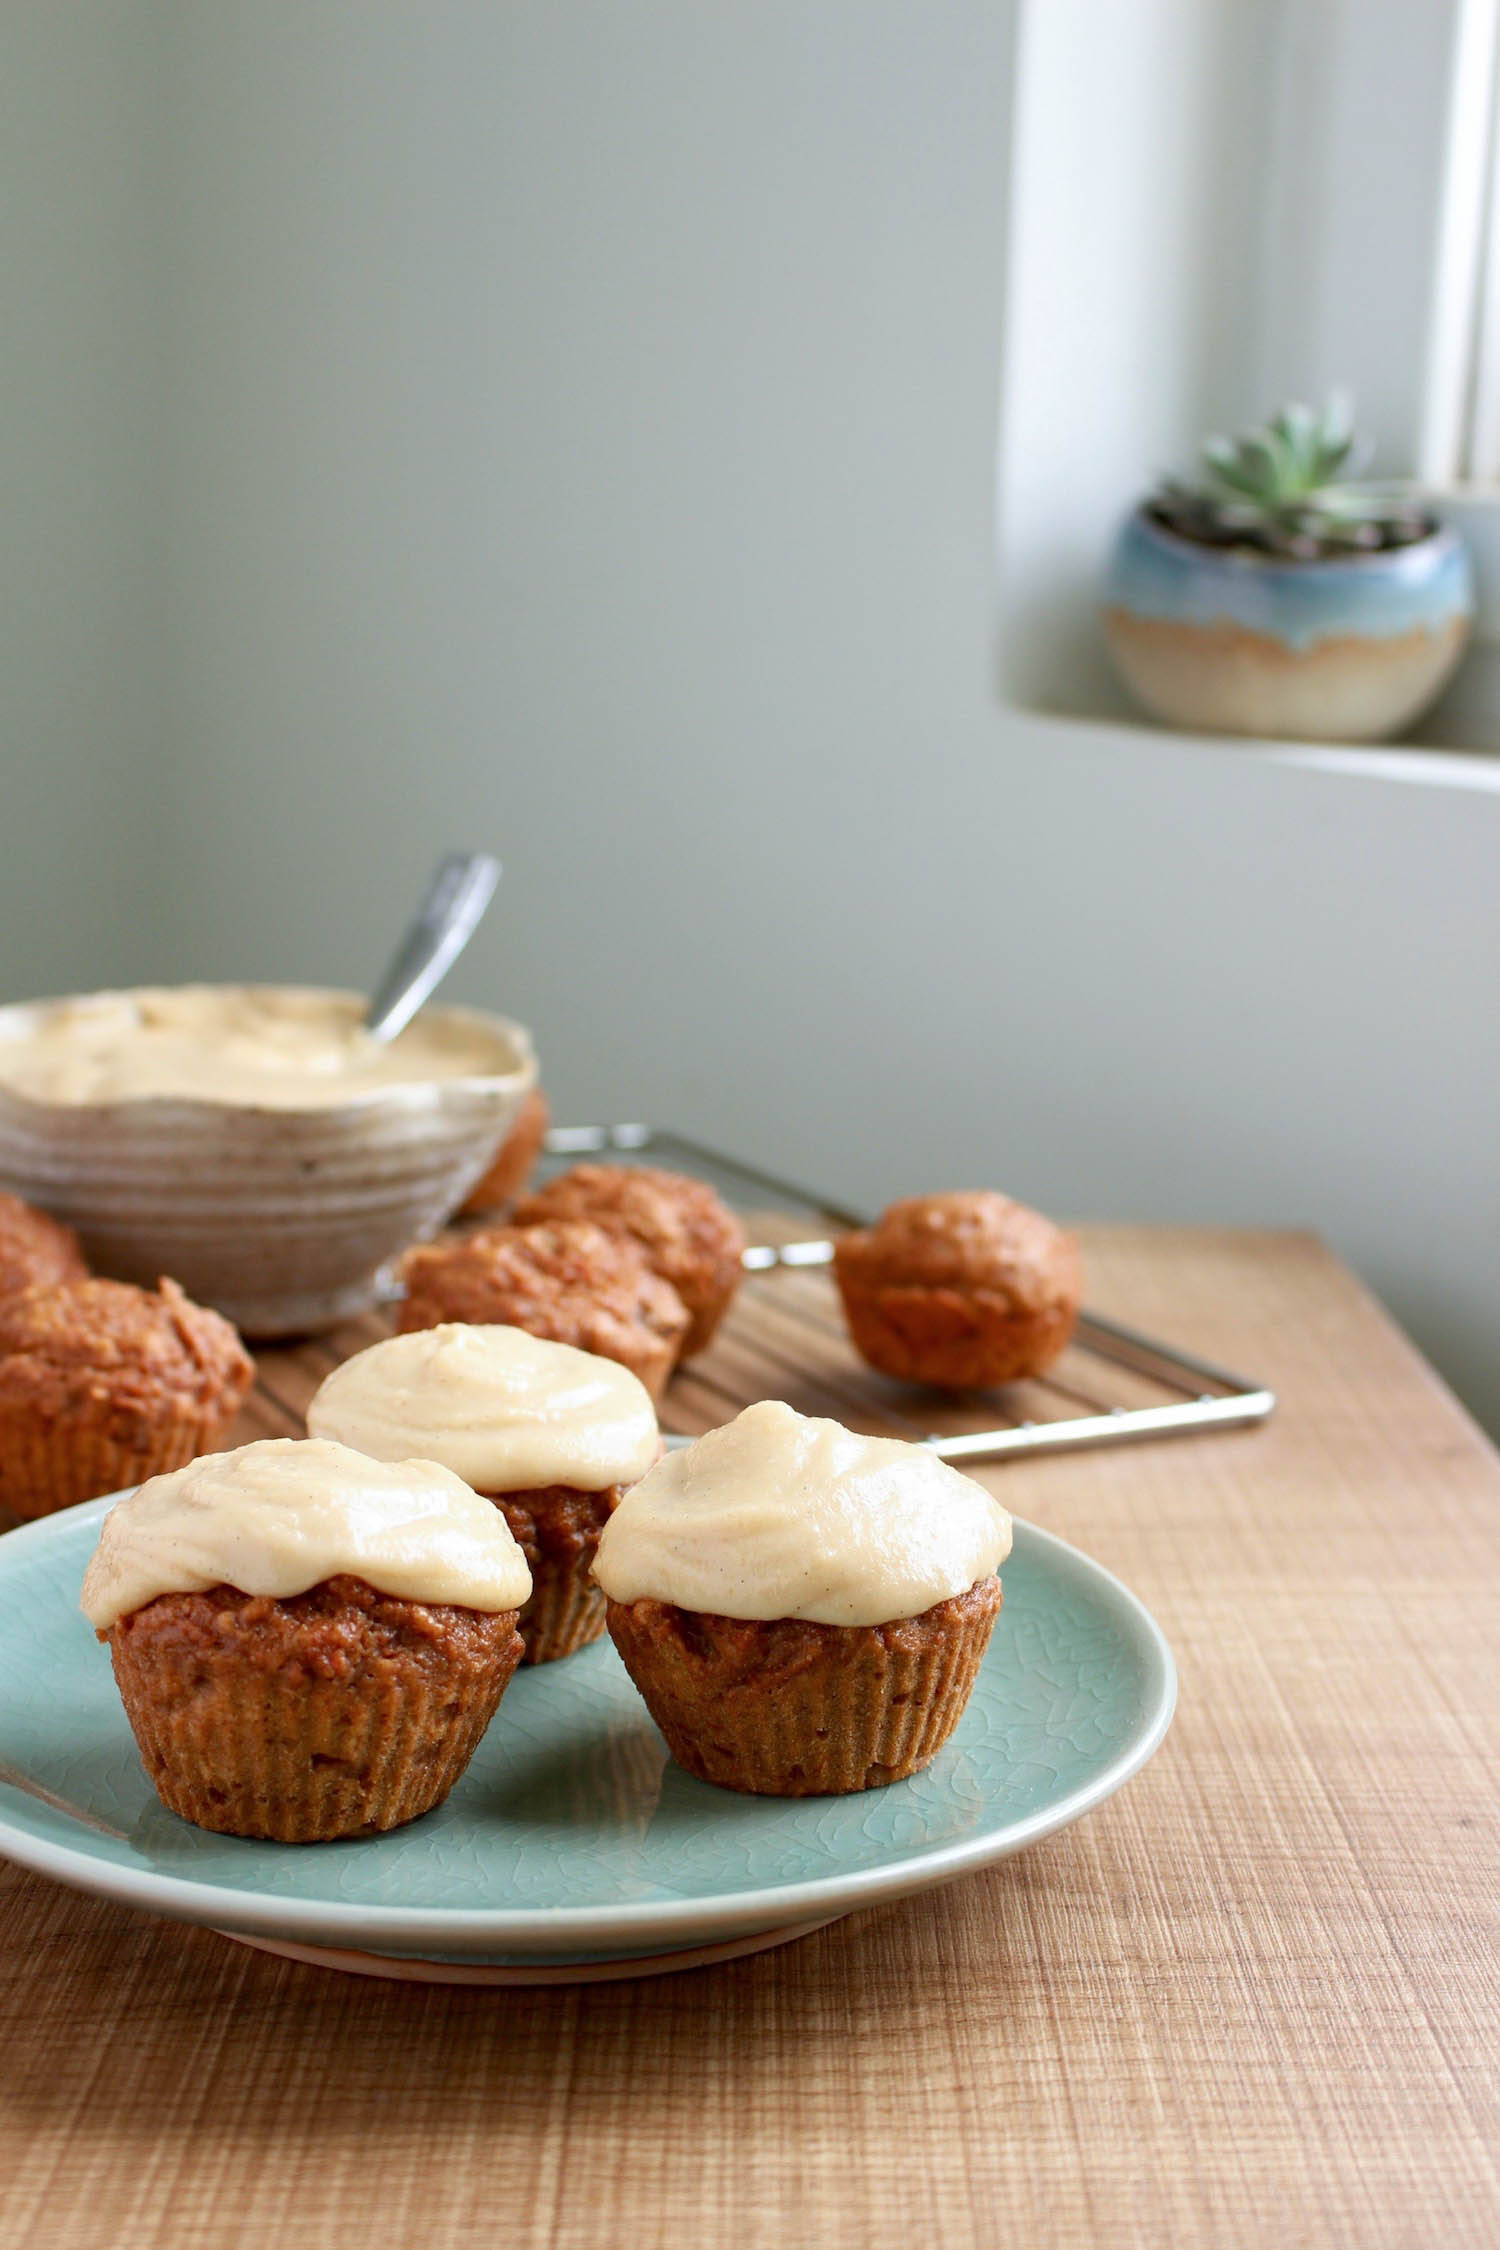 Vegan Carrot Cake Cupcakes With Cashew Frosting The Conscientious